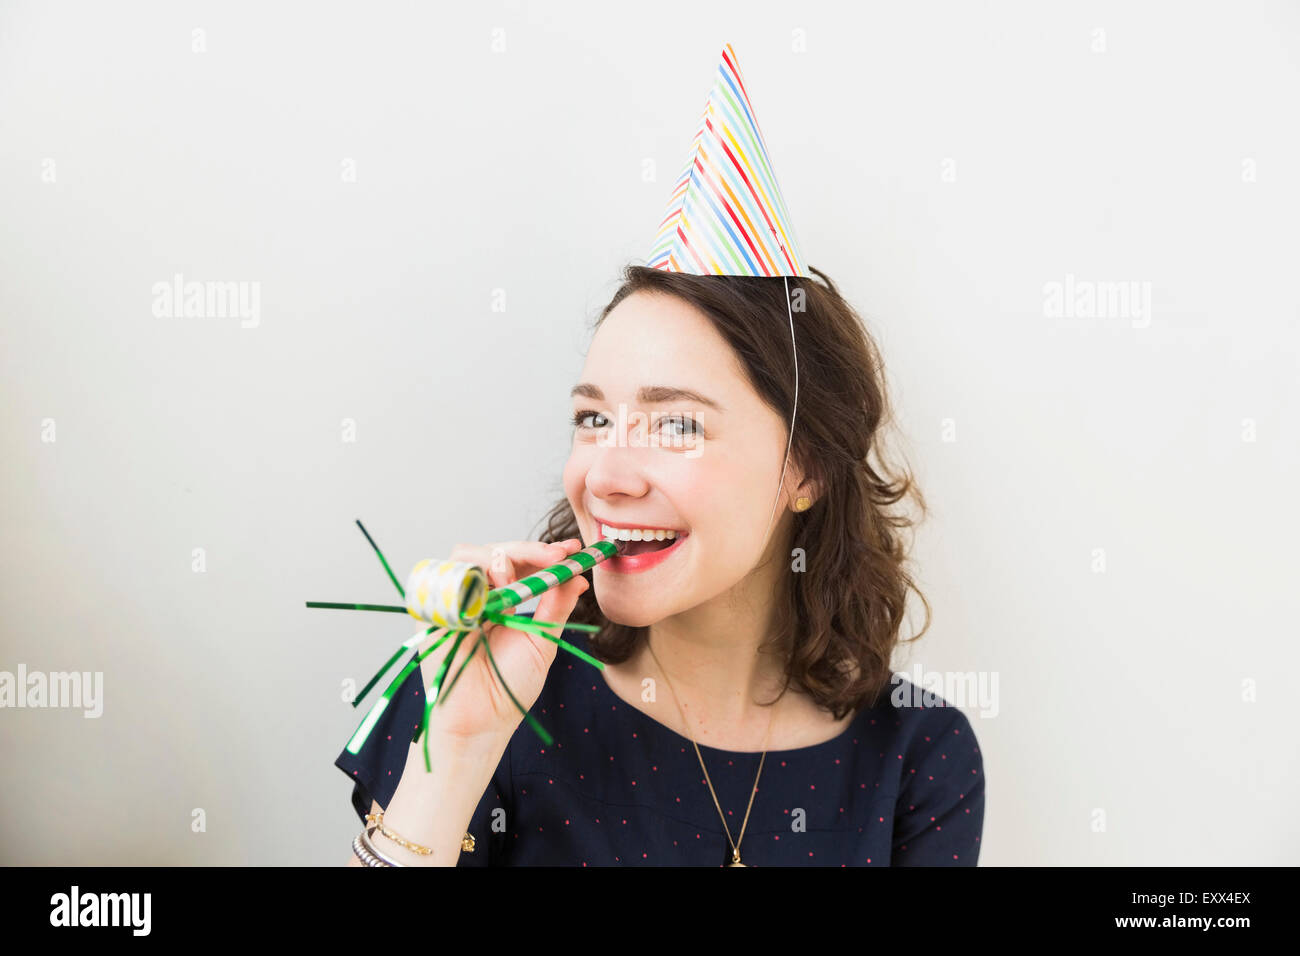 Smiling young woman with party horn blower - Stock Image